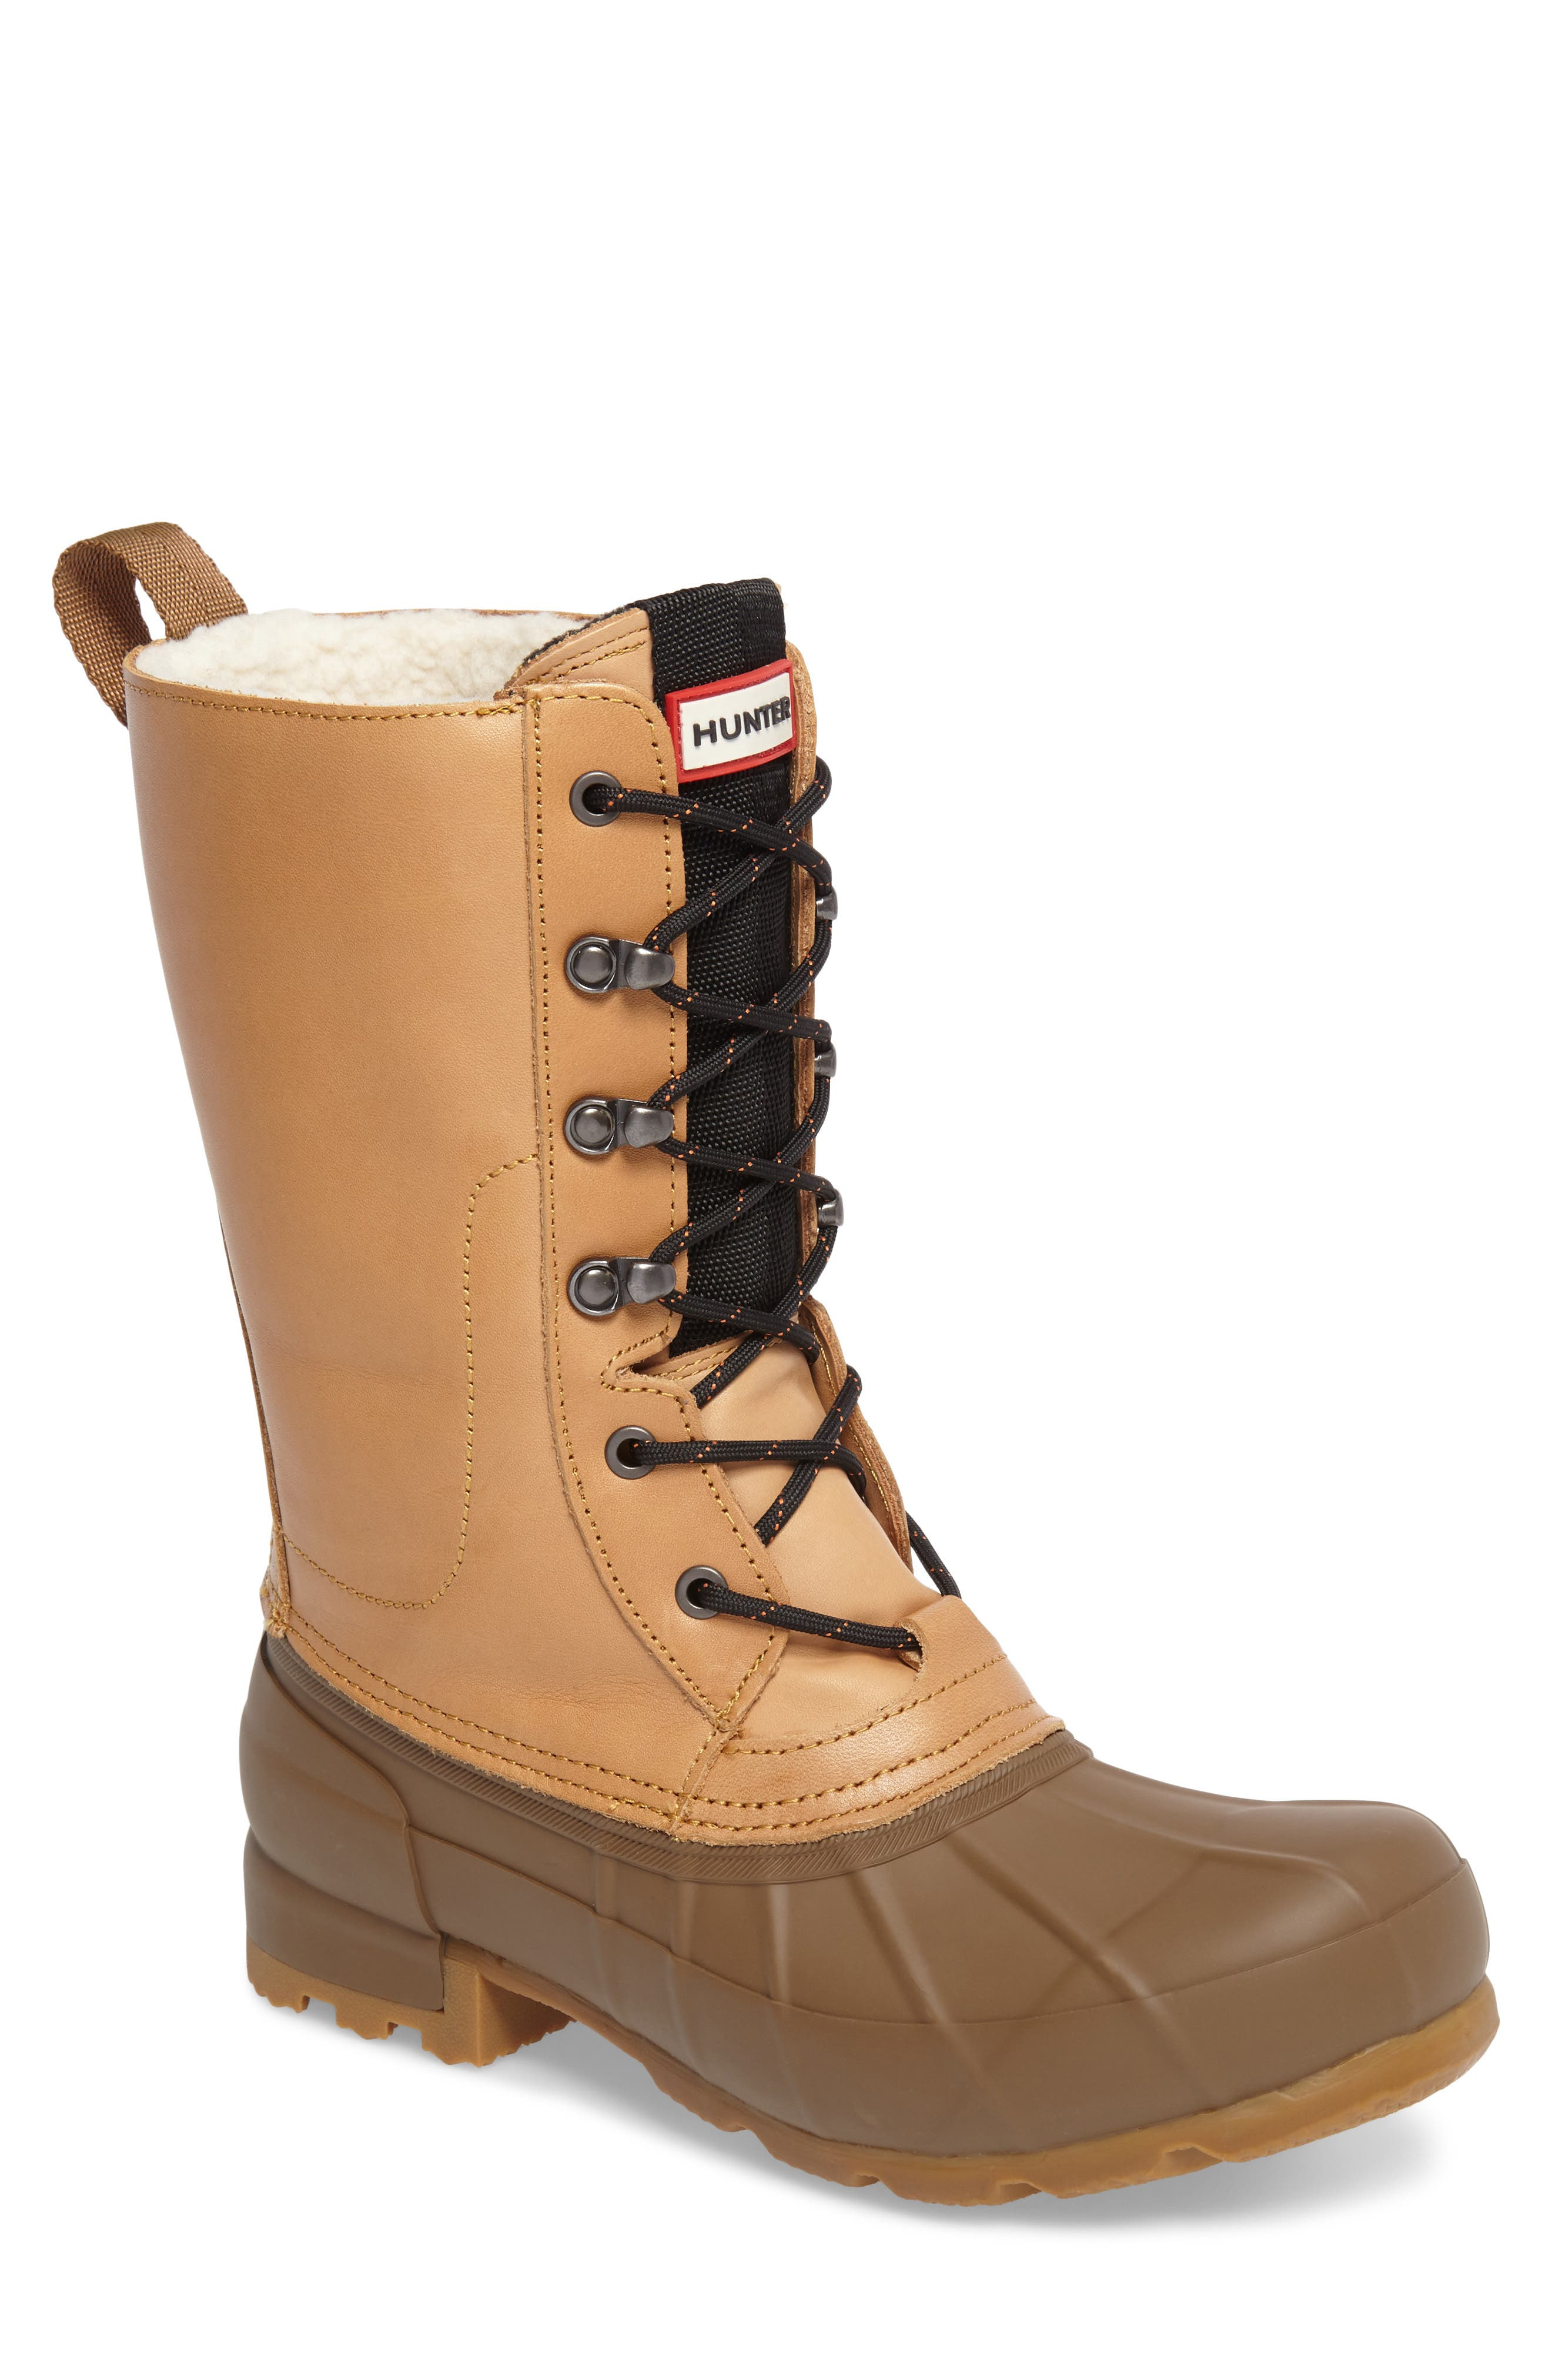 Original Pac Waterproof Boot,                             Main thumbnail 1, color,                             PLUTO / LIGHT KHAKI BROWN